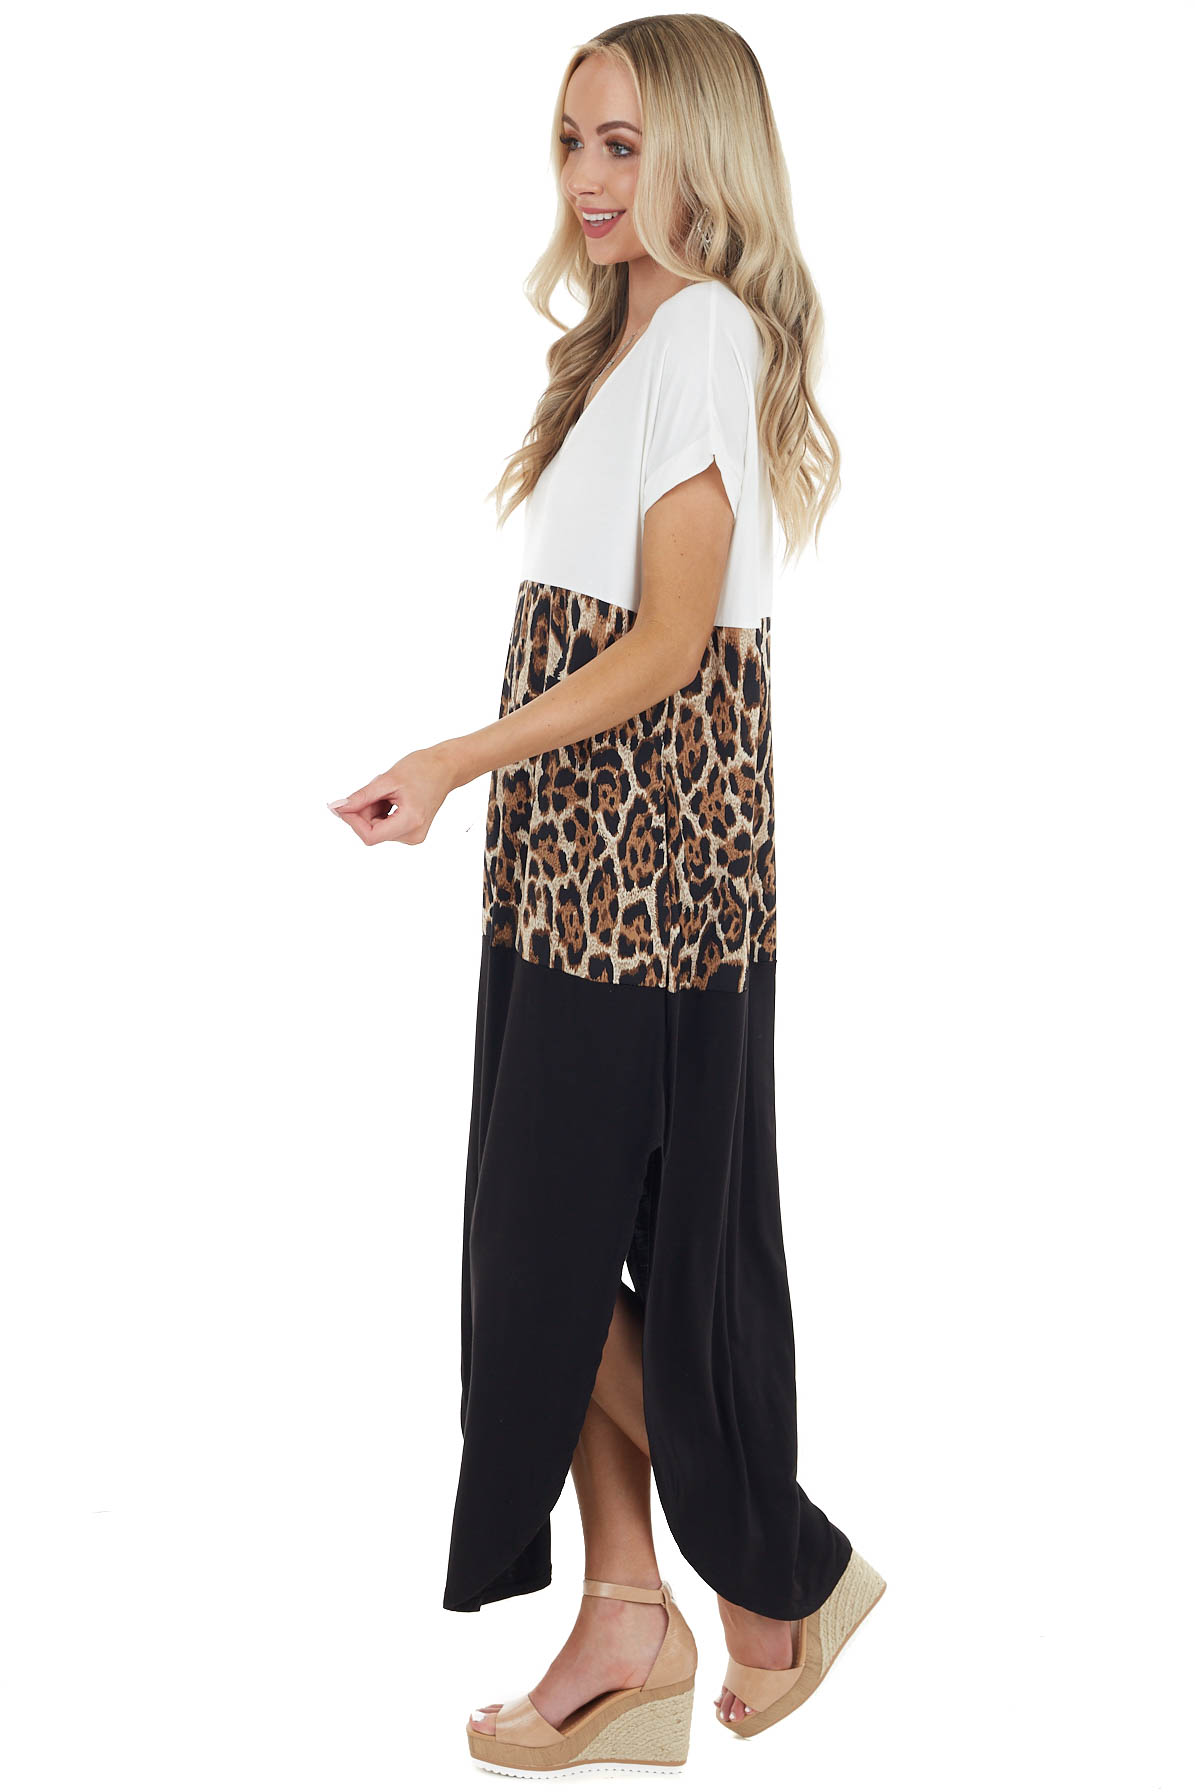 Black and Ivory Leopard Print Color Block Maxi Dress